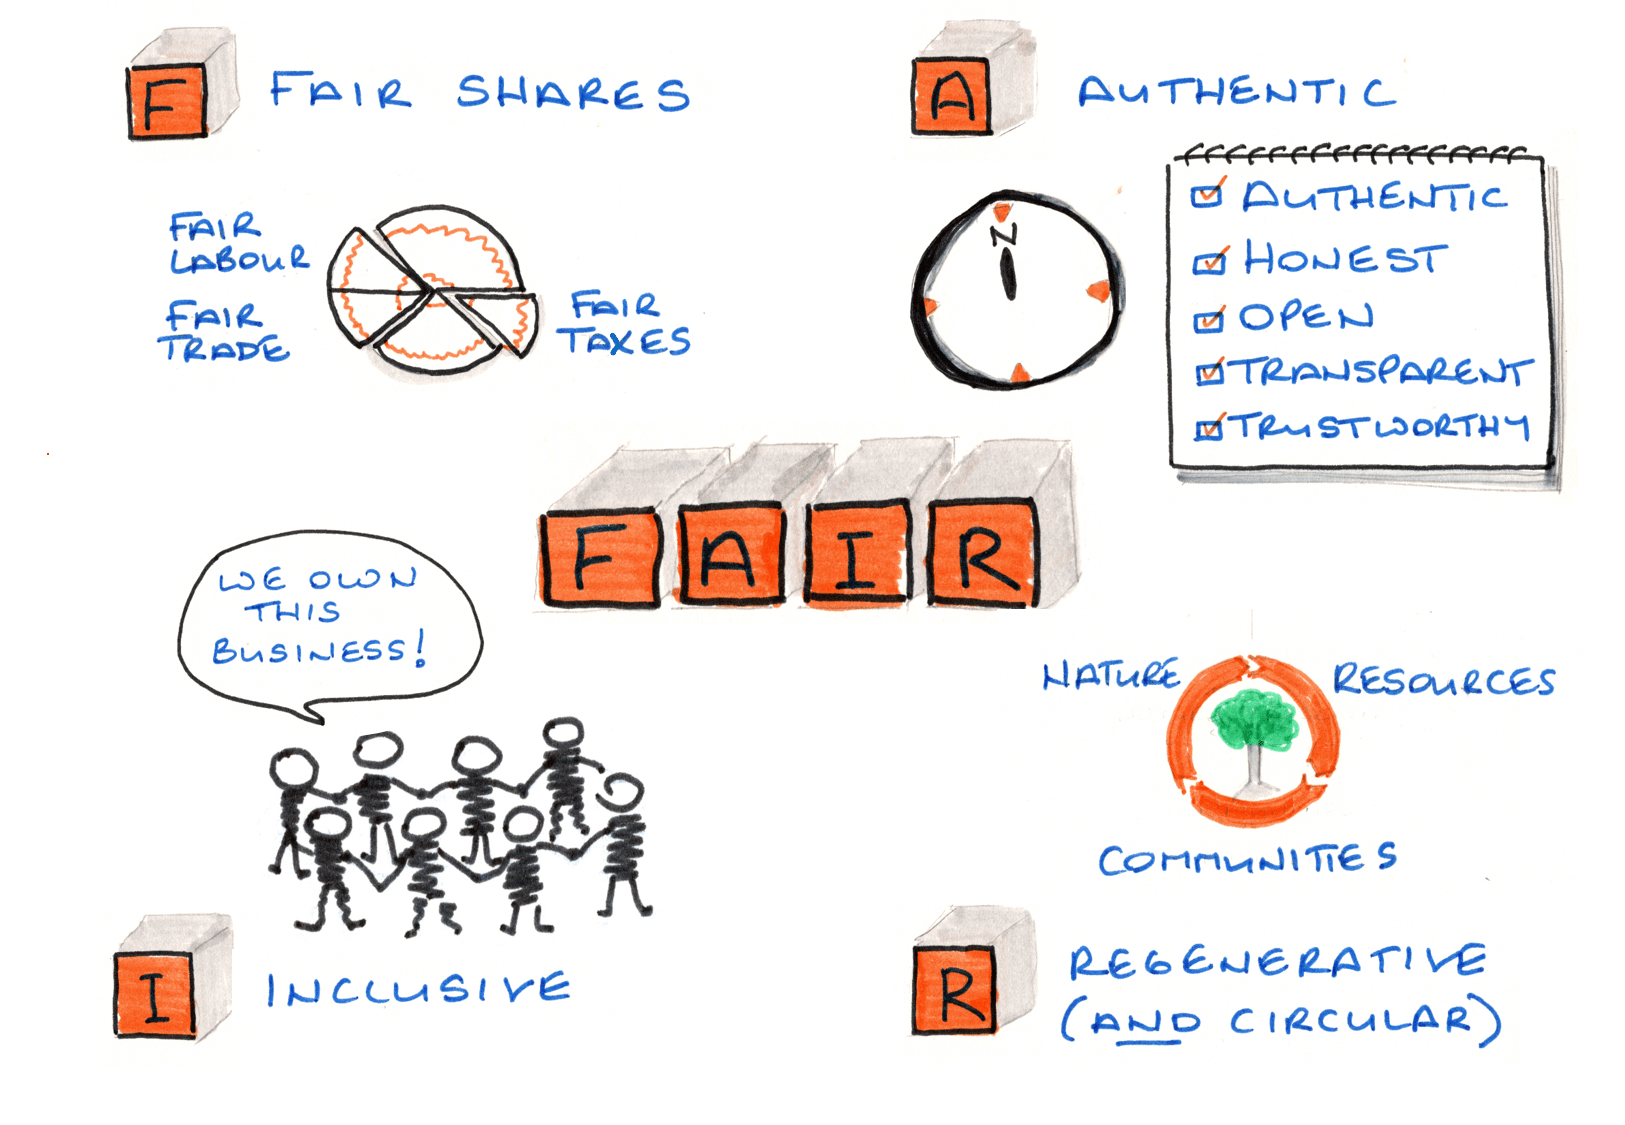 Fair infographic updated